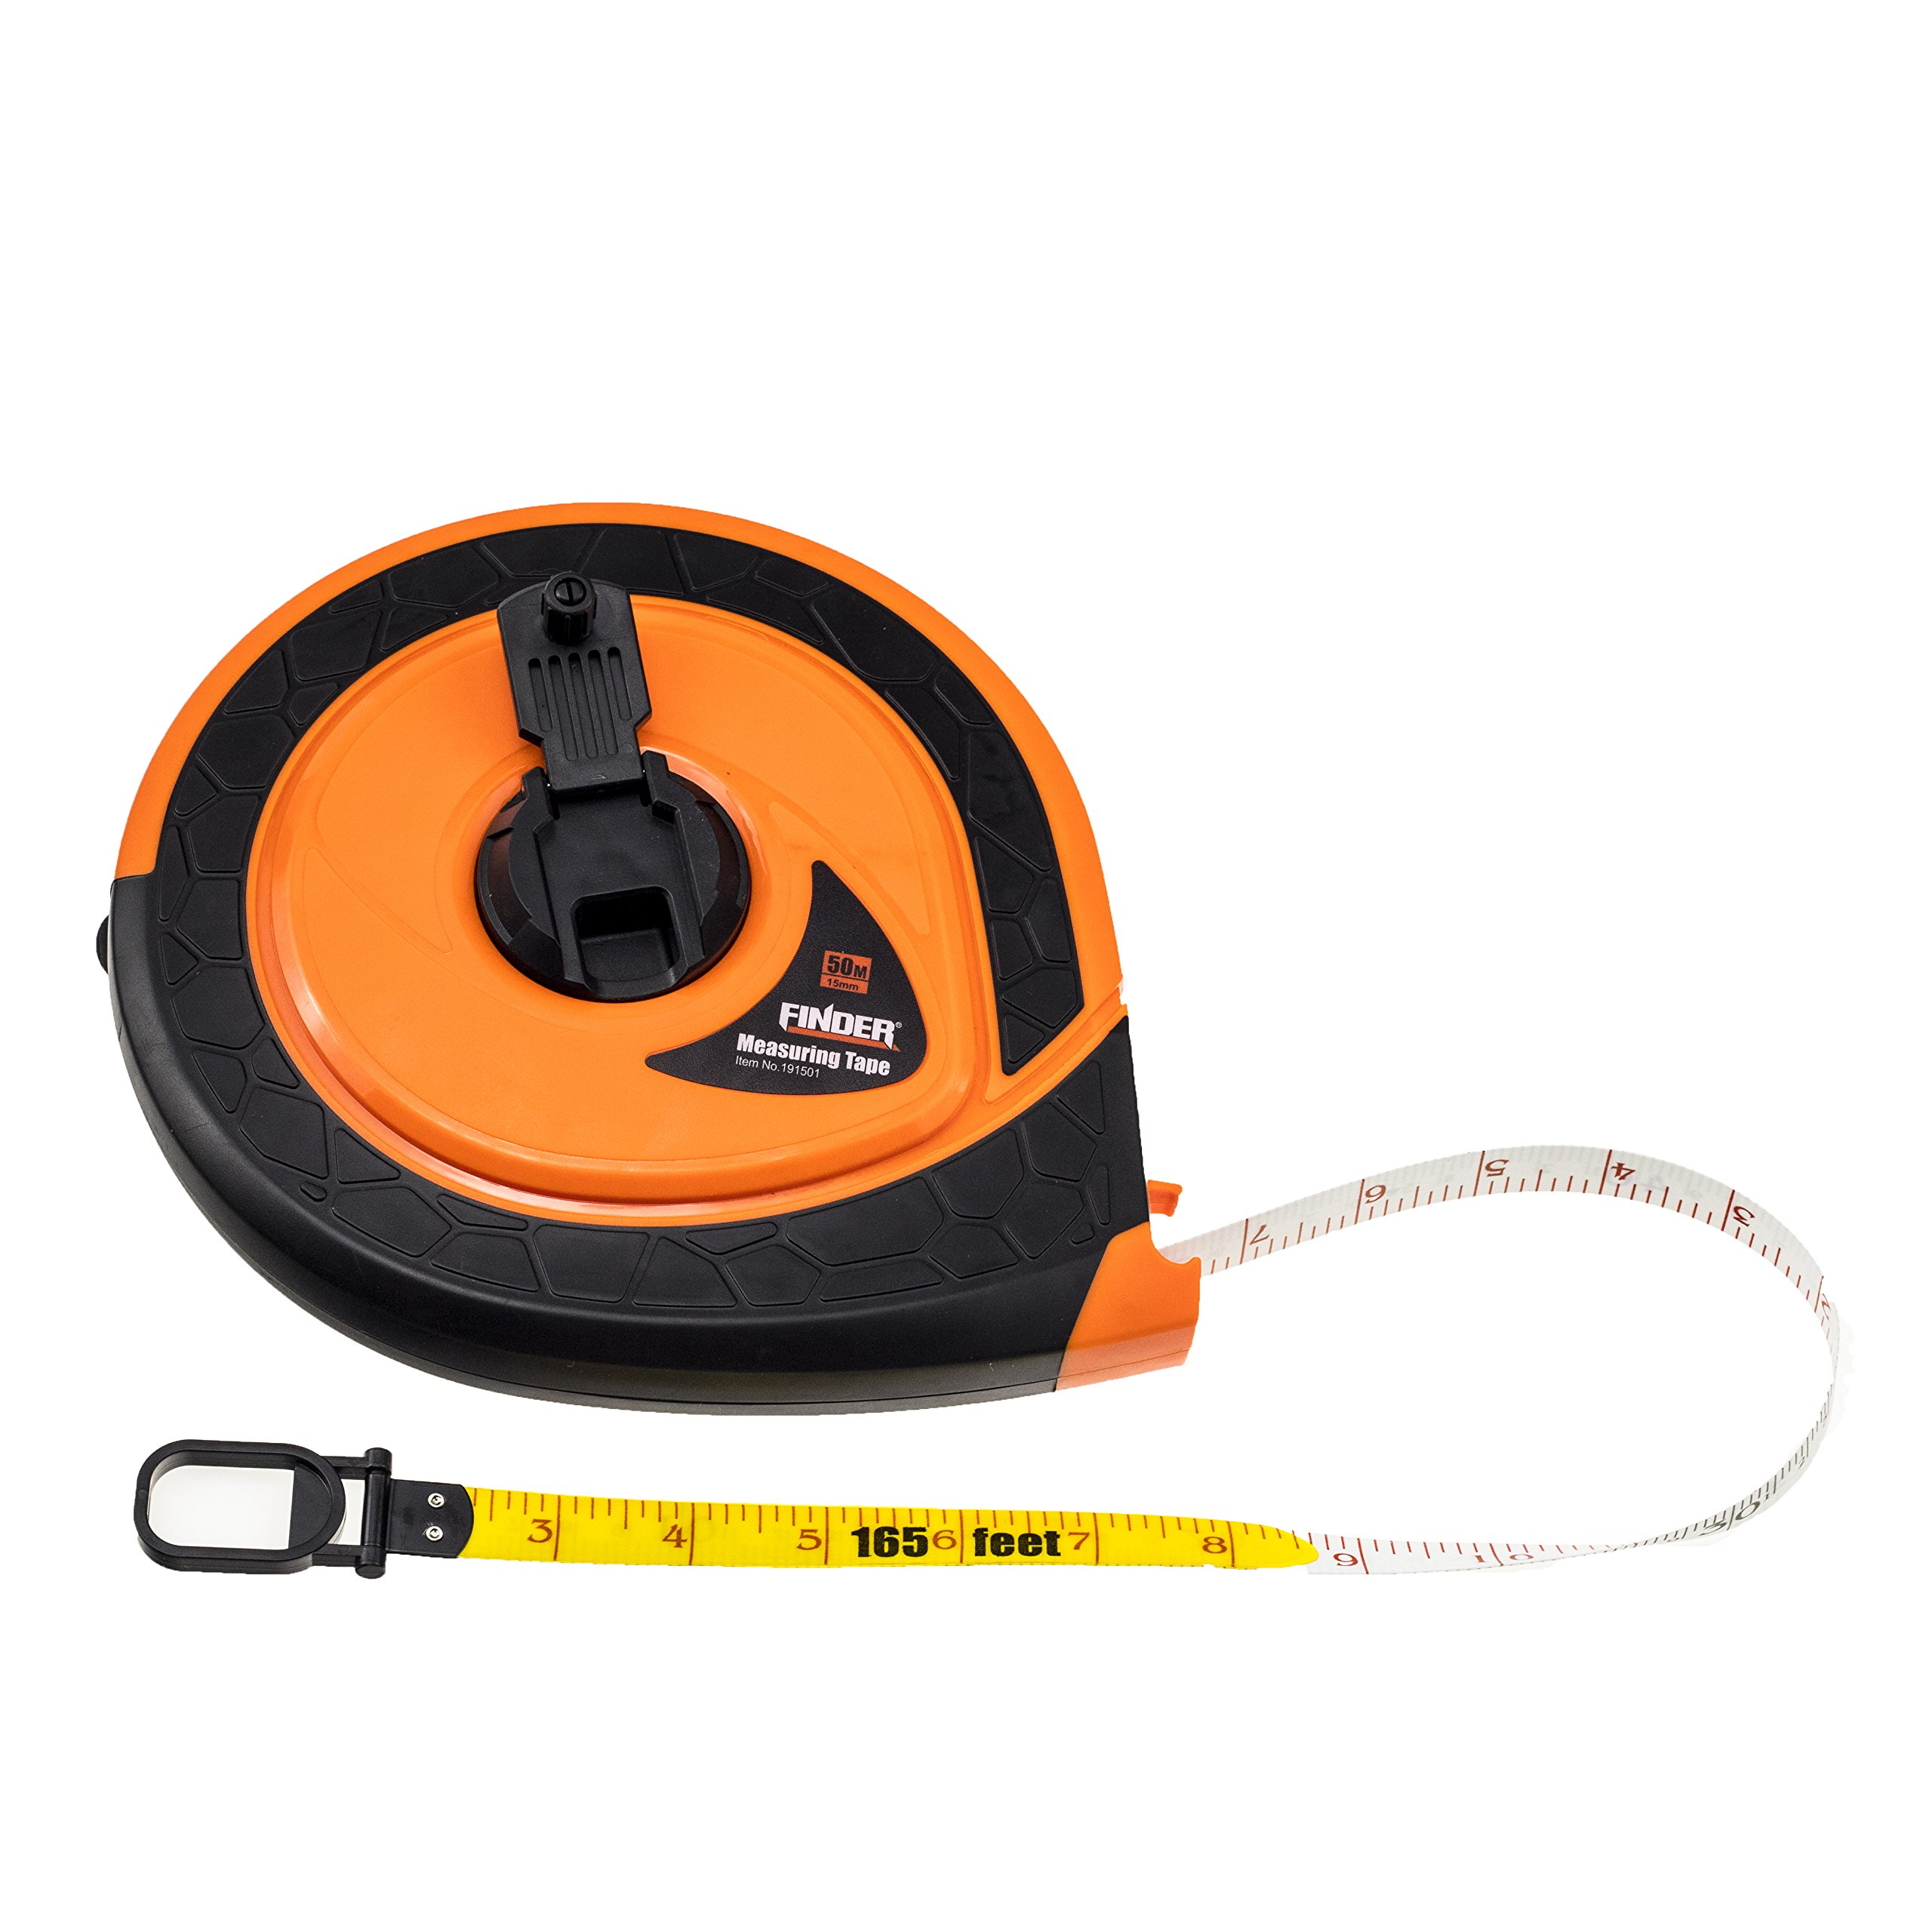 Finder 4X Speed Rewinding 164ft (50m) Fiberglass Measuring Tape Reels, 2-Sided Nylon Metric/Imperial 15mm 5/8-Inch, Extra Long, Tough and Durable Professional Tool